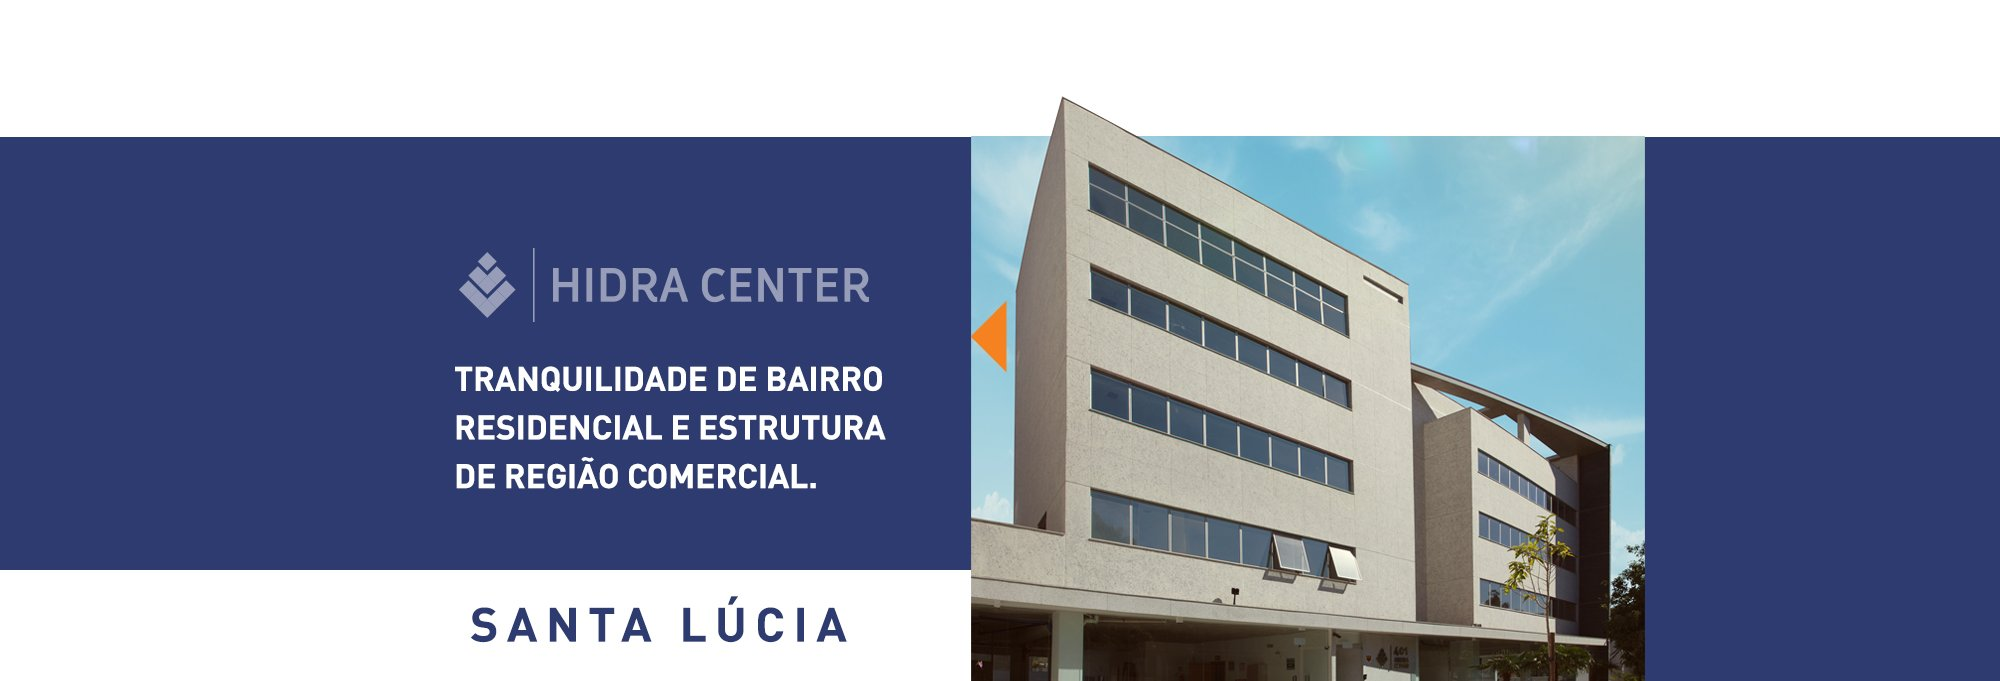 Ed. Hidra Center